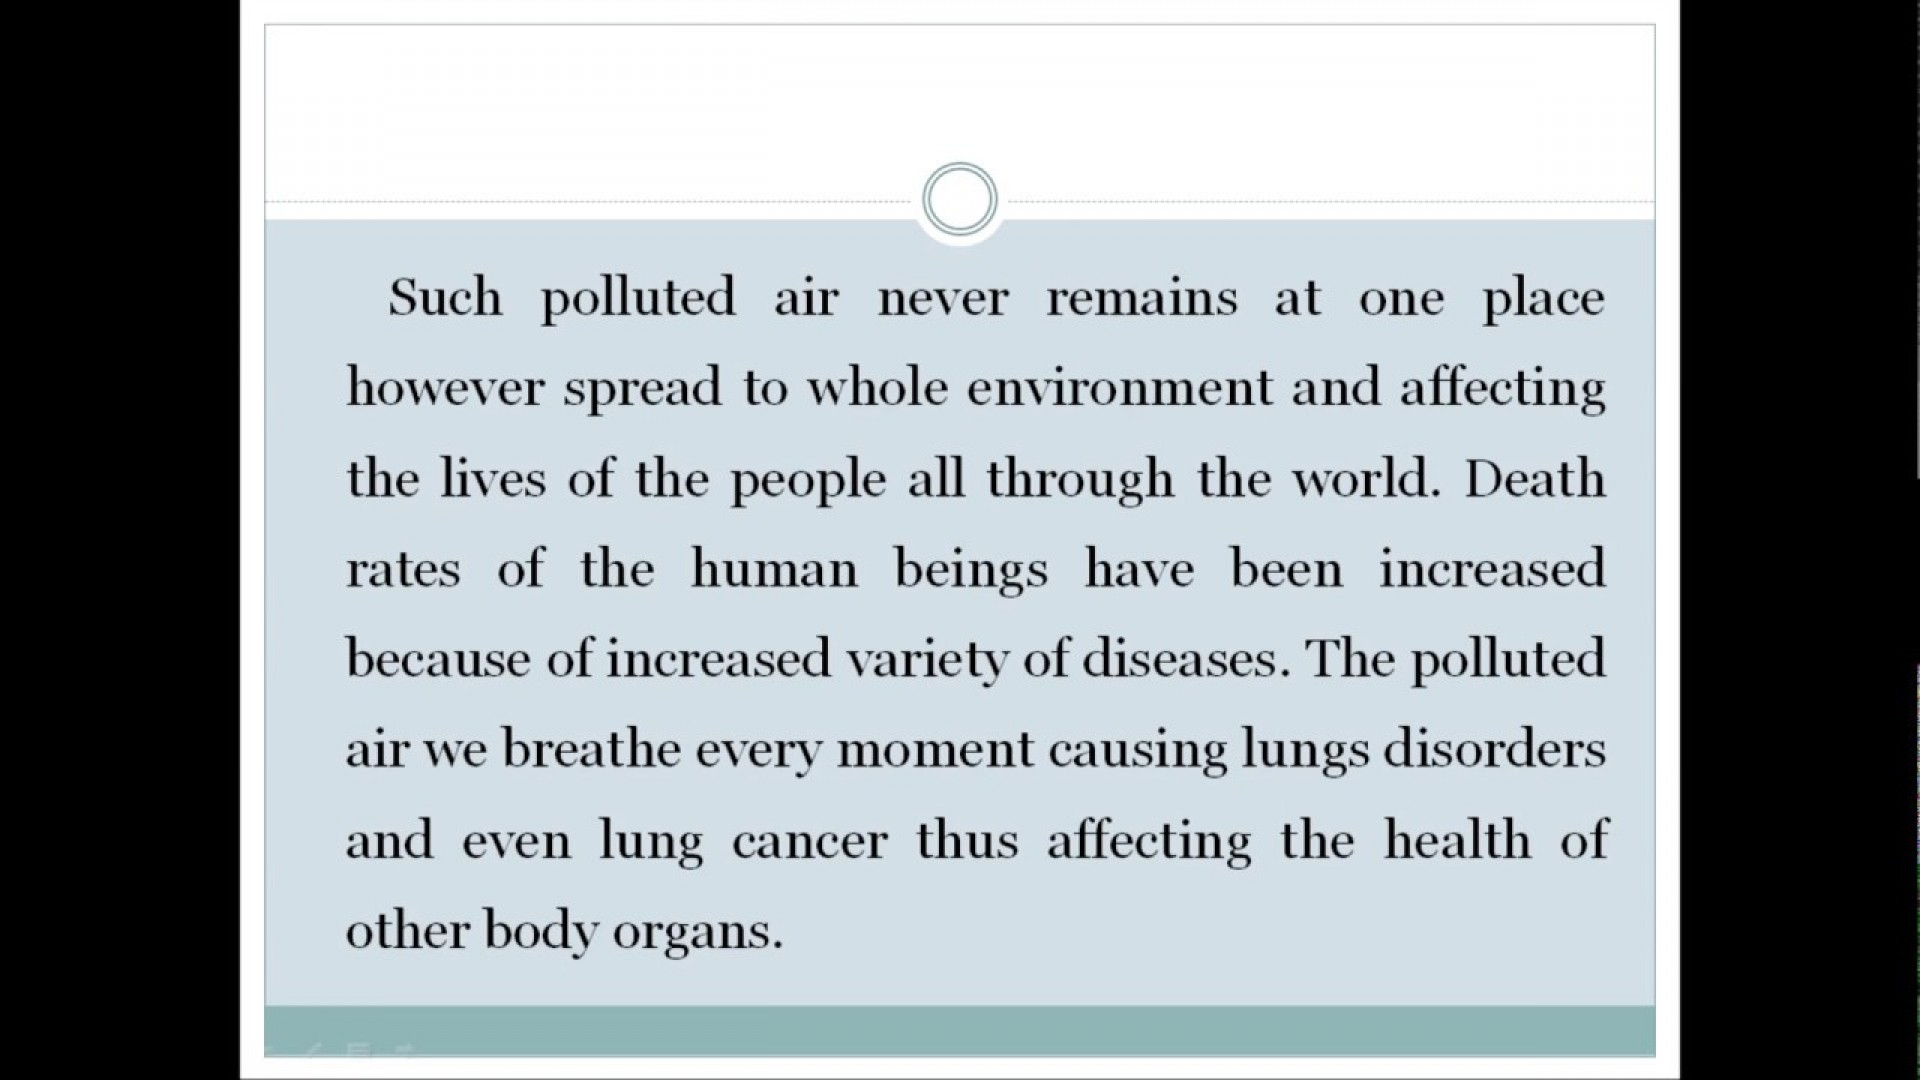 012 Essay Example Cause And Effect On Pollution Astounding Of About Air Land Ocean 1920